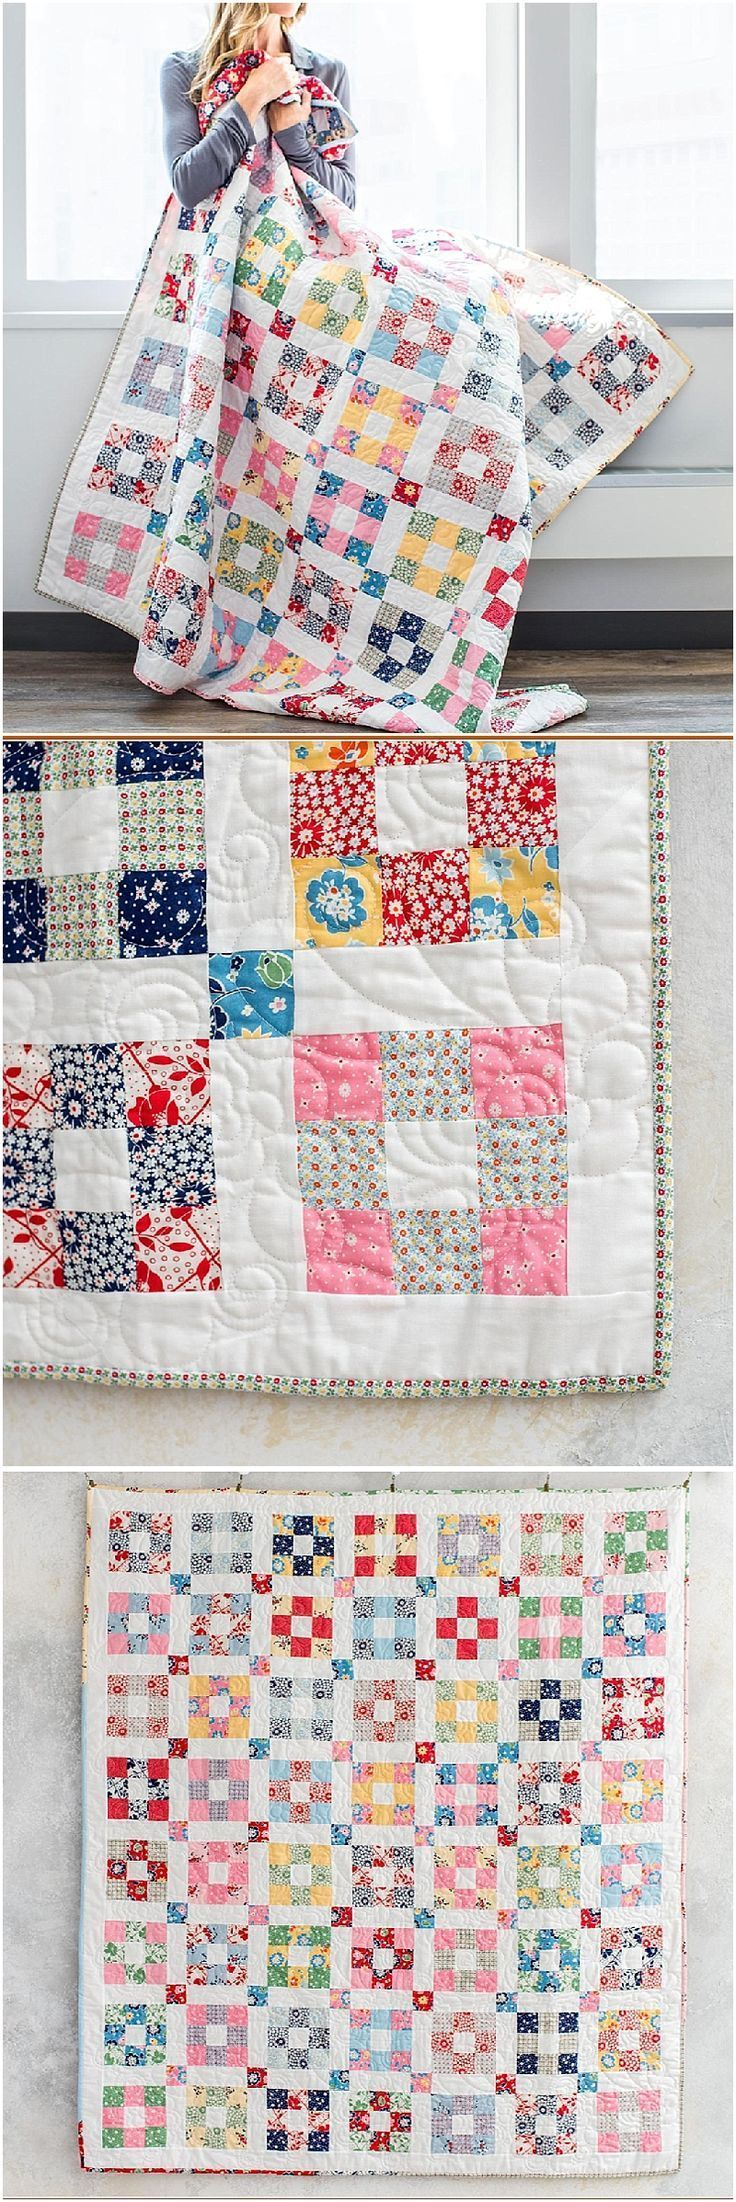 Hopscotch 1930's Revival Quilt